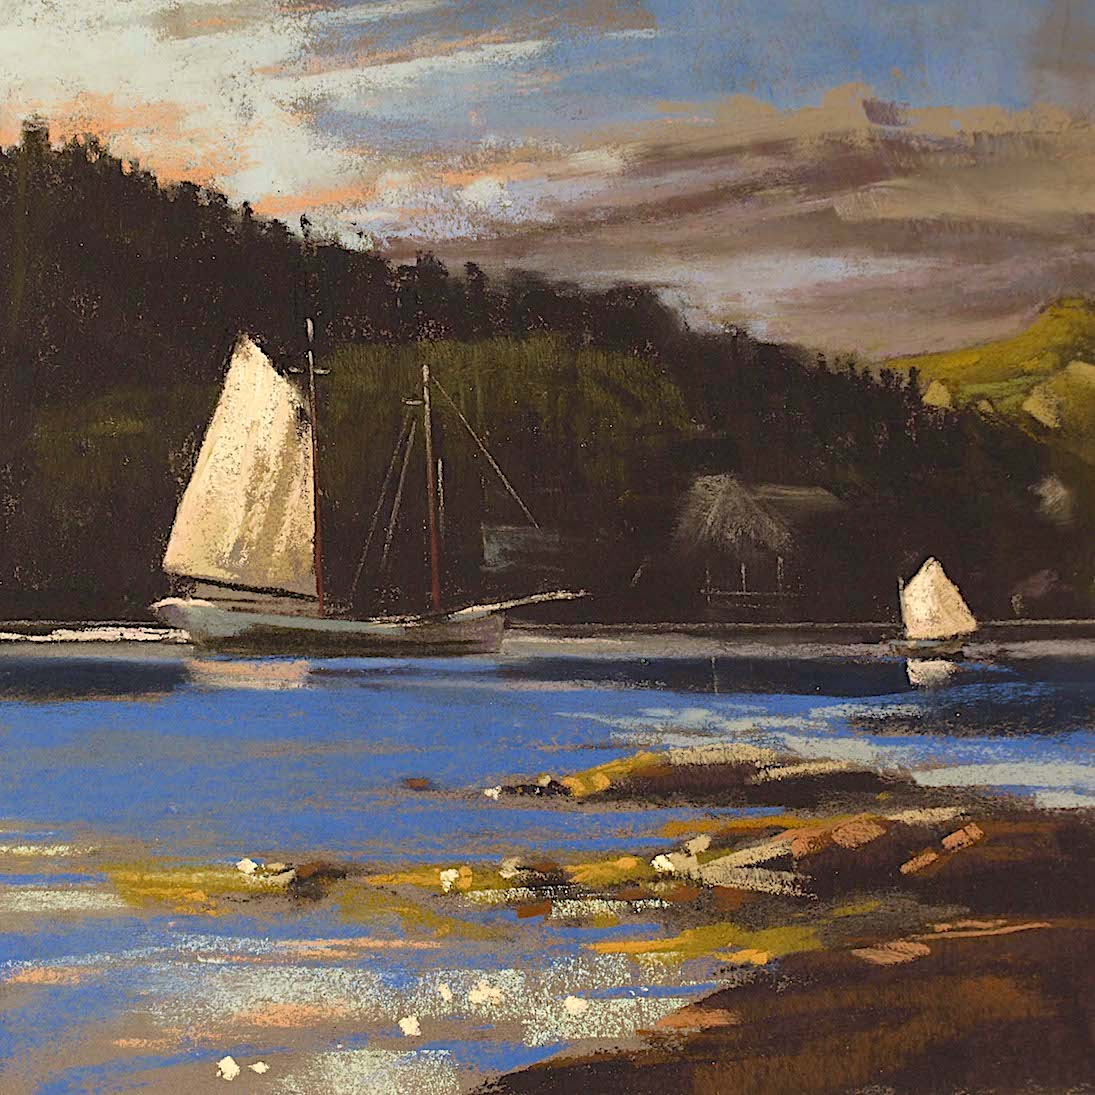 Grob_Harbor Meet Up_pastel_14x14_$800.jpg